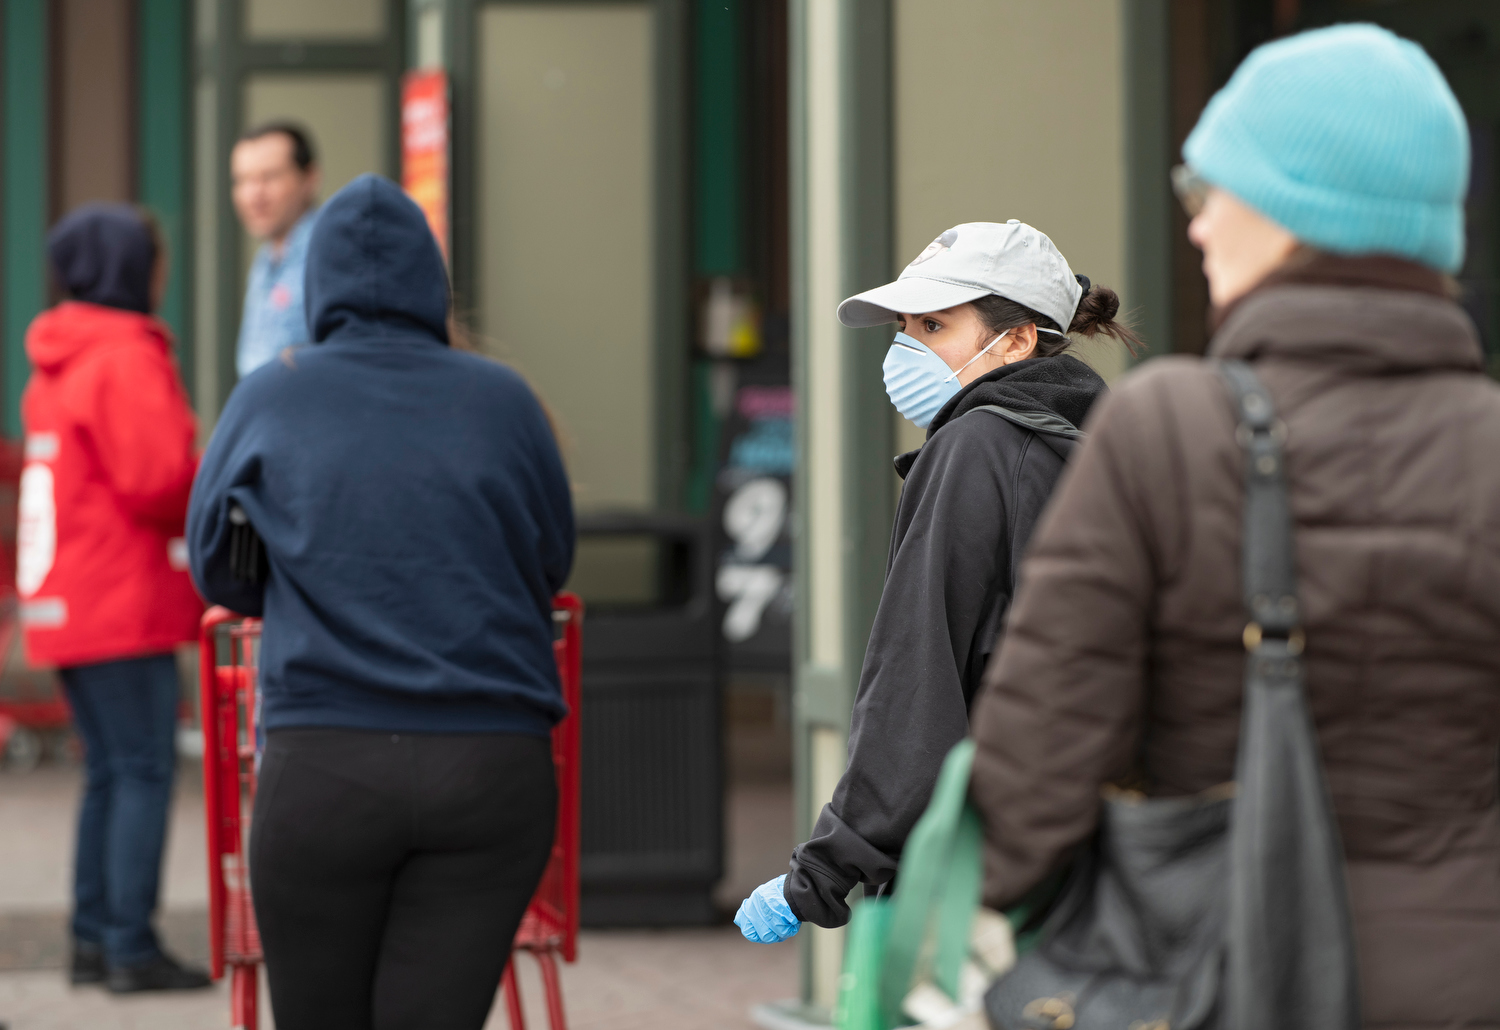 HYANNIS - A shopper wearing a mask waits to get in to Trader Joe's on Monday, March 23, 2020. The store was limiting the number of customers  allowed to be in the store.